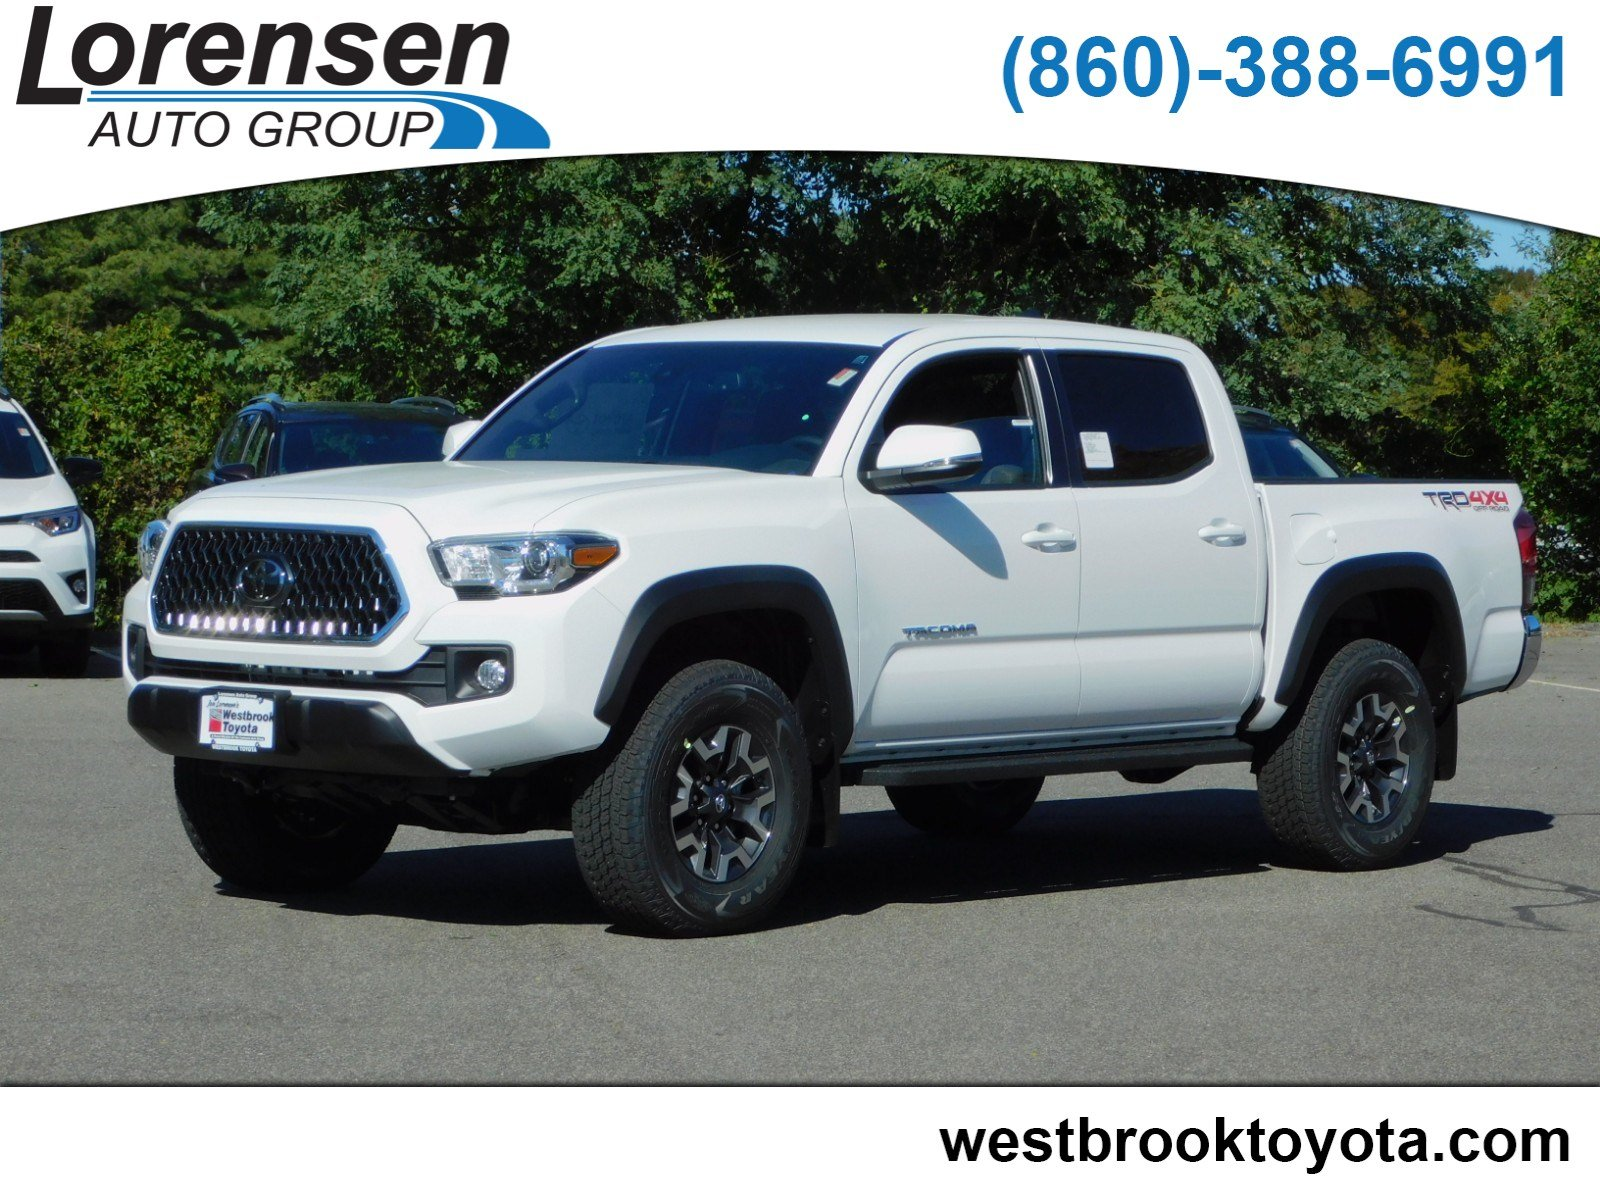 New 2019 Toyota Ta a TRD f Road Double Cab in Westbrook